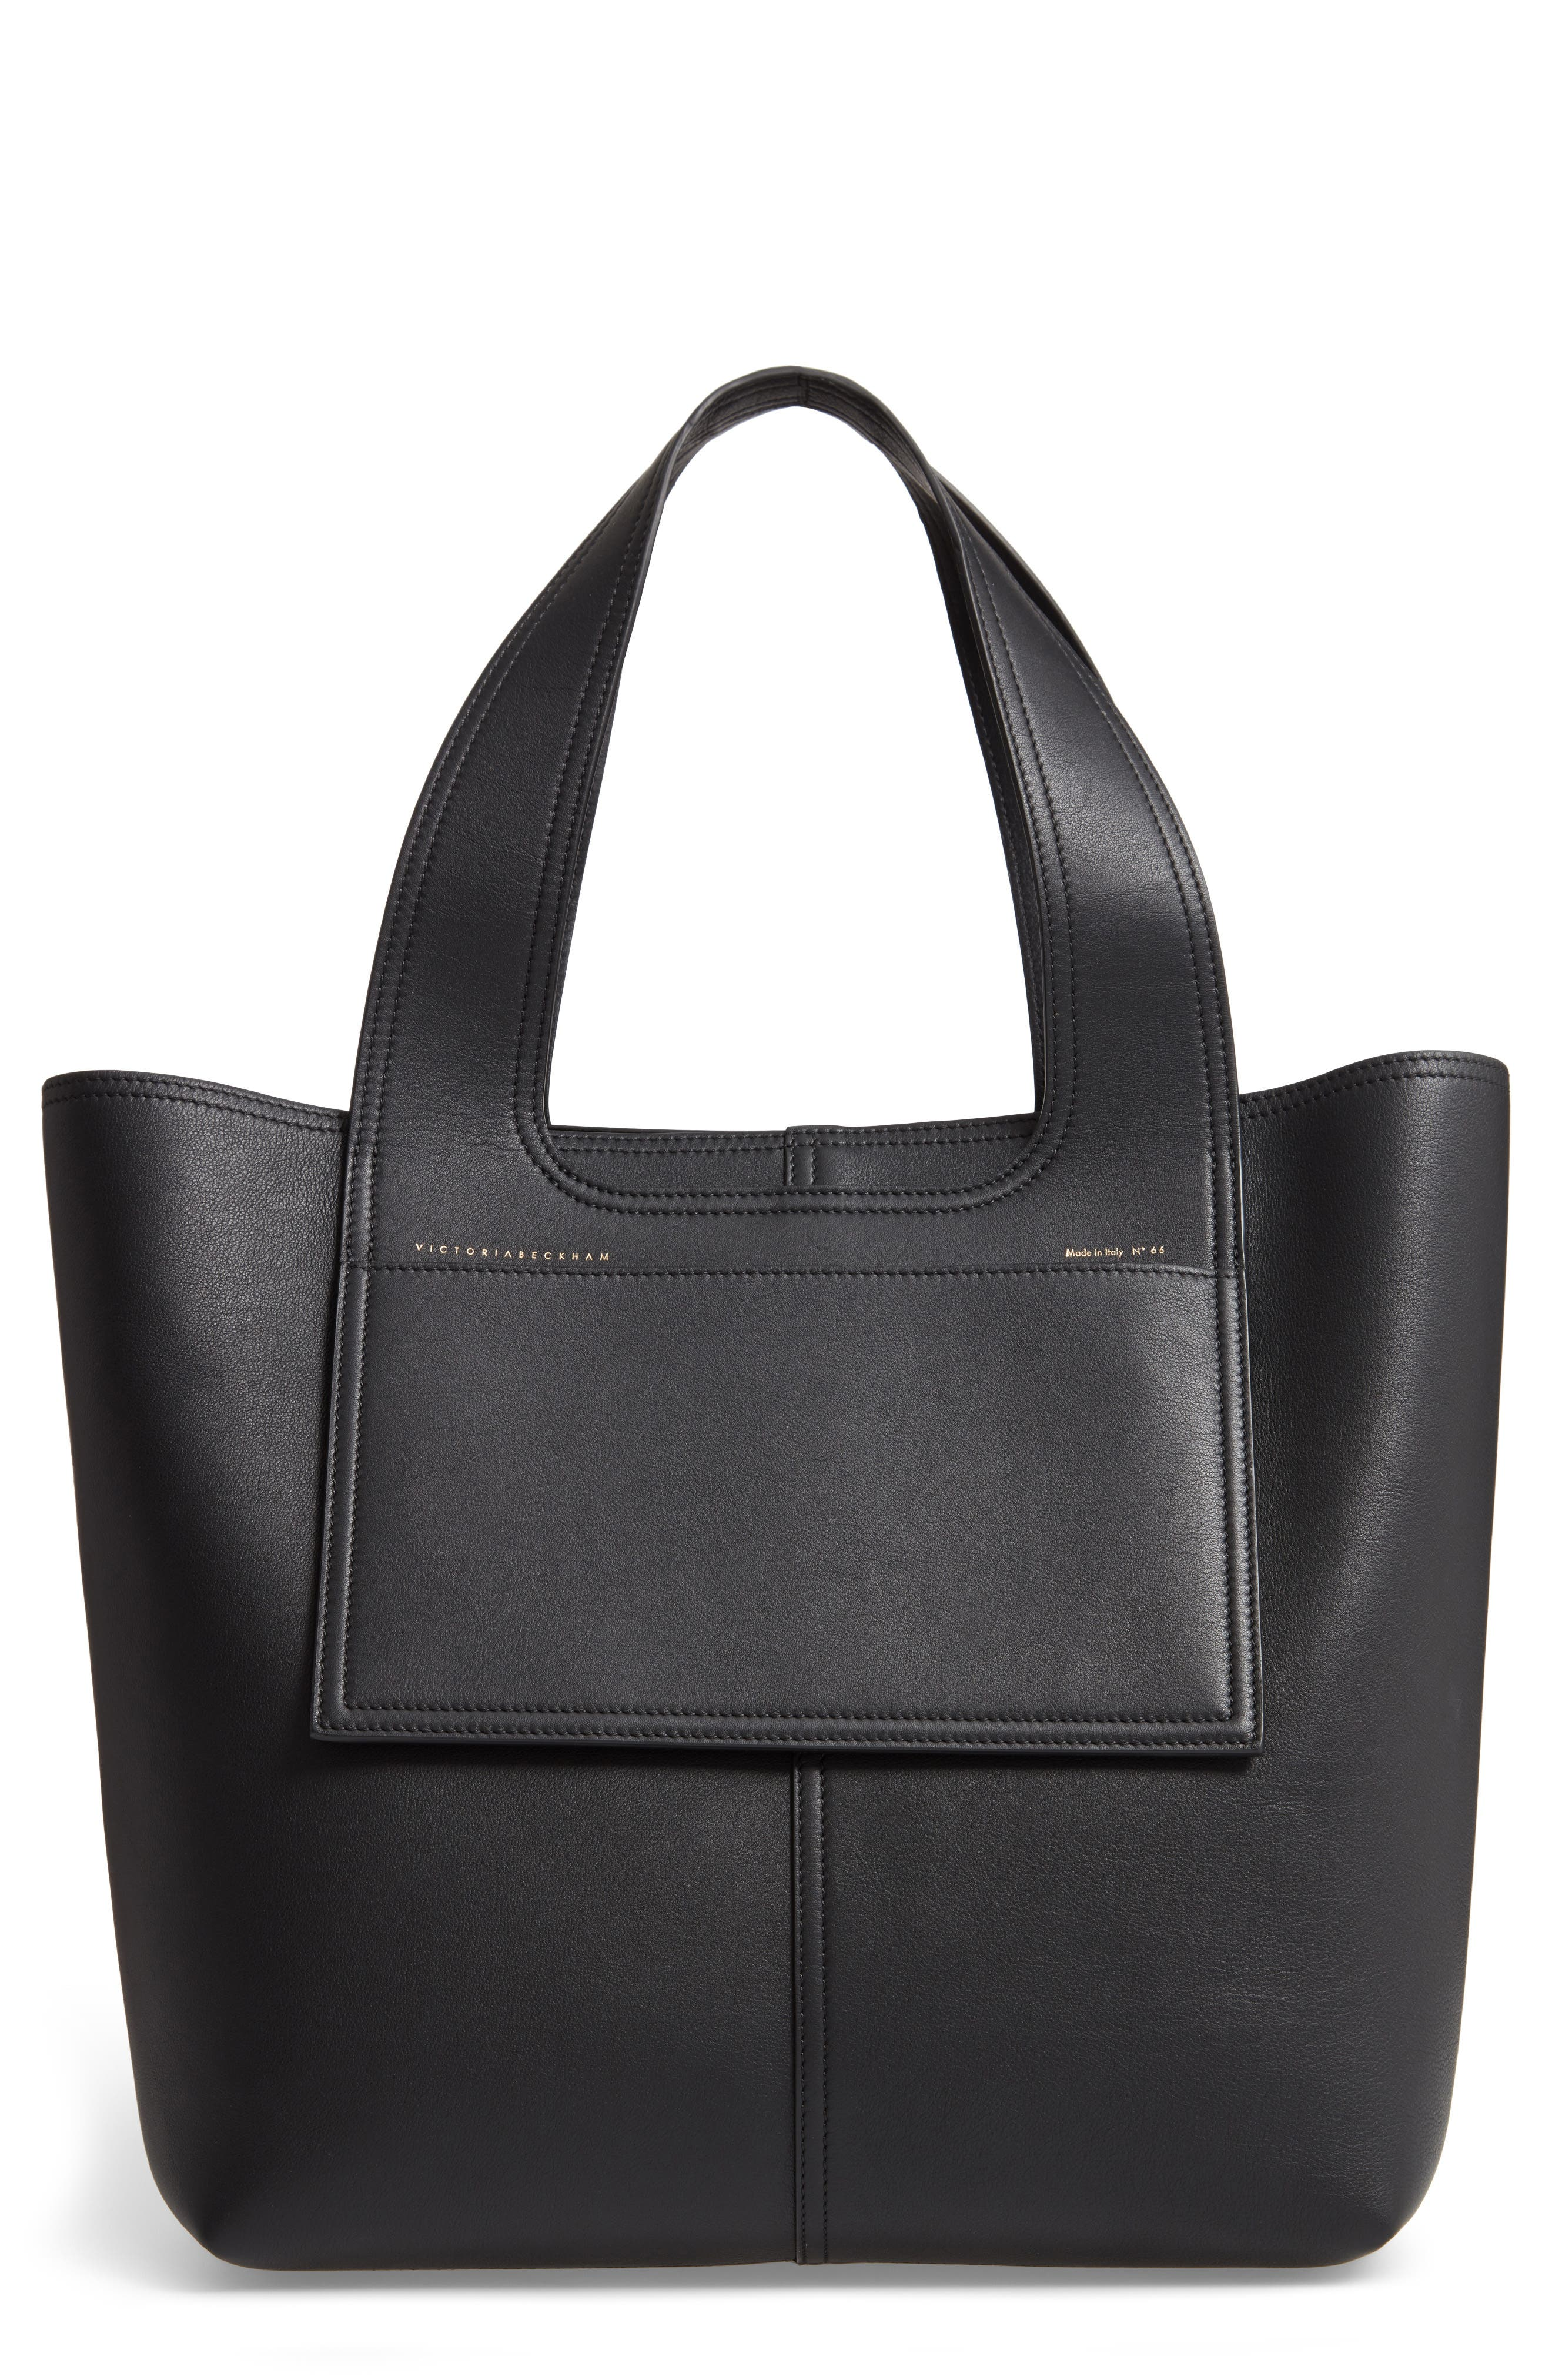 VICTORIA BECKHAM Apron Leather Tote, Main, color, 001